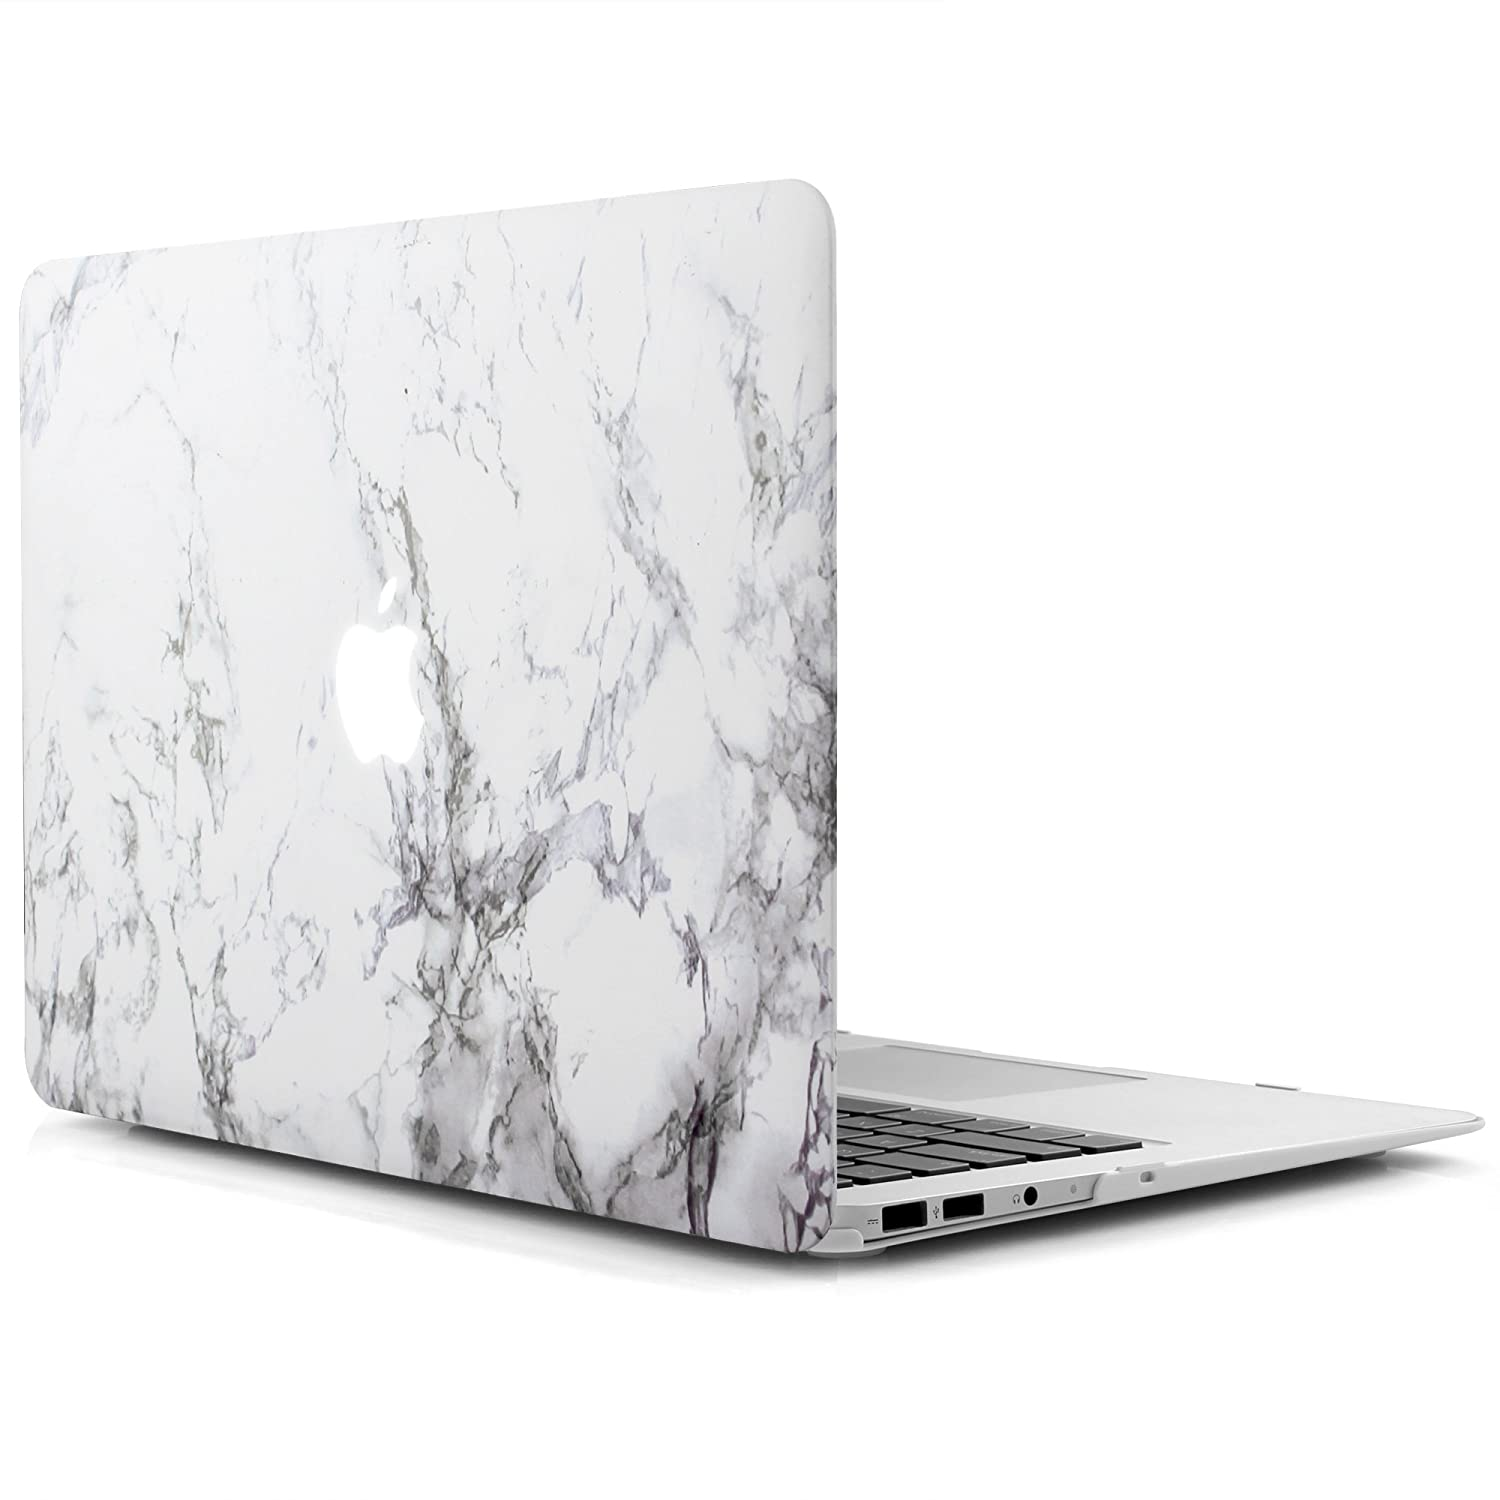 iDOO Matte Rubber Coated Soft Touch Plastic Hard Case for MacBook Air 13 inch Model A1369 and A1466 White Marble